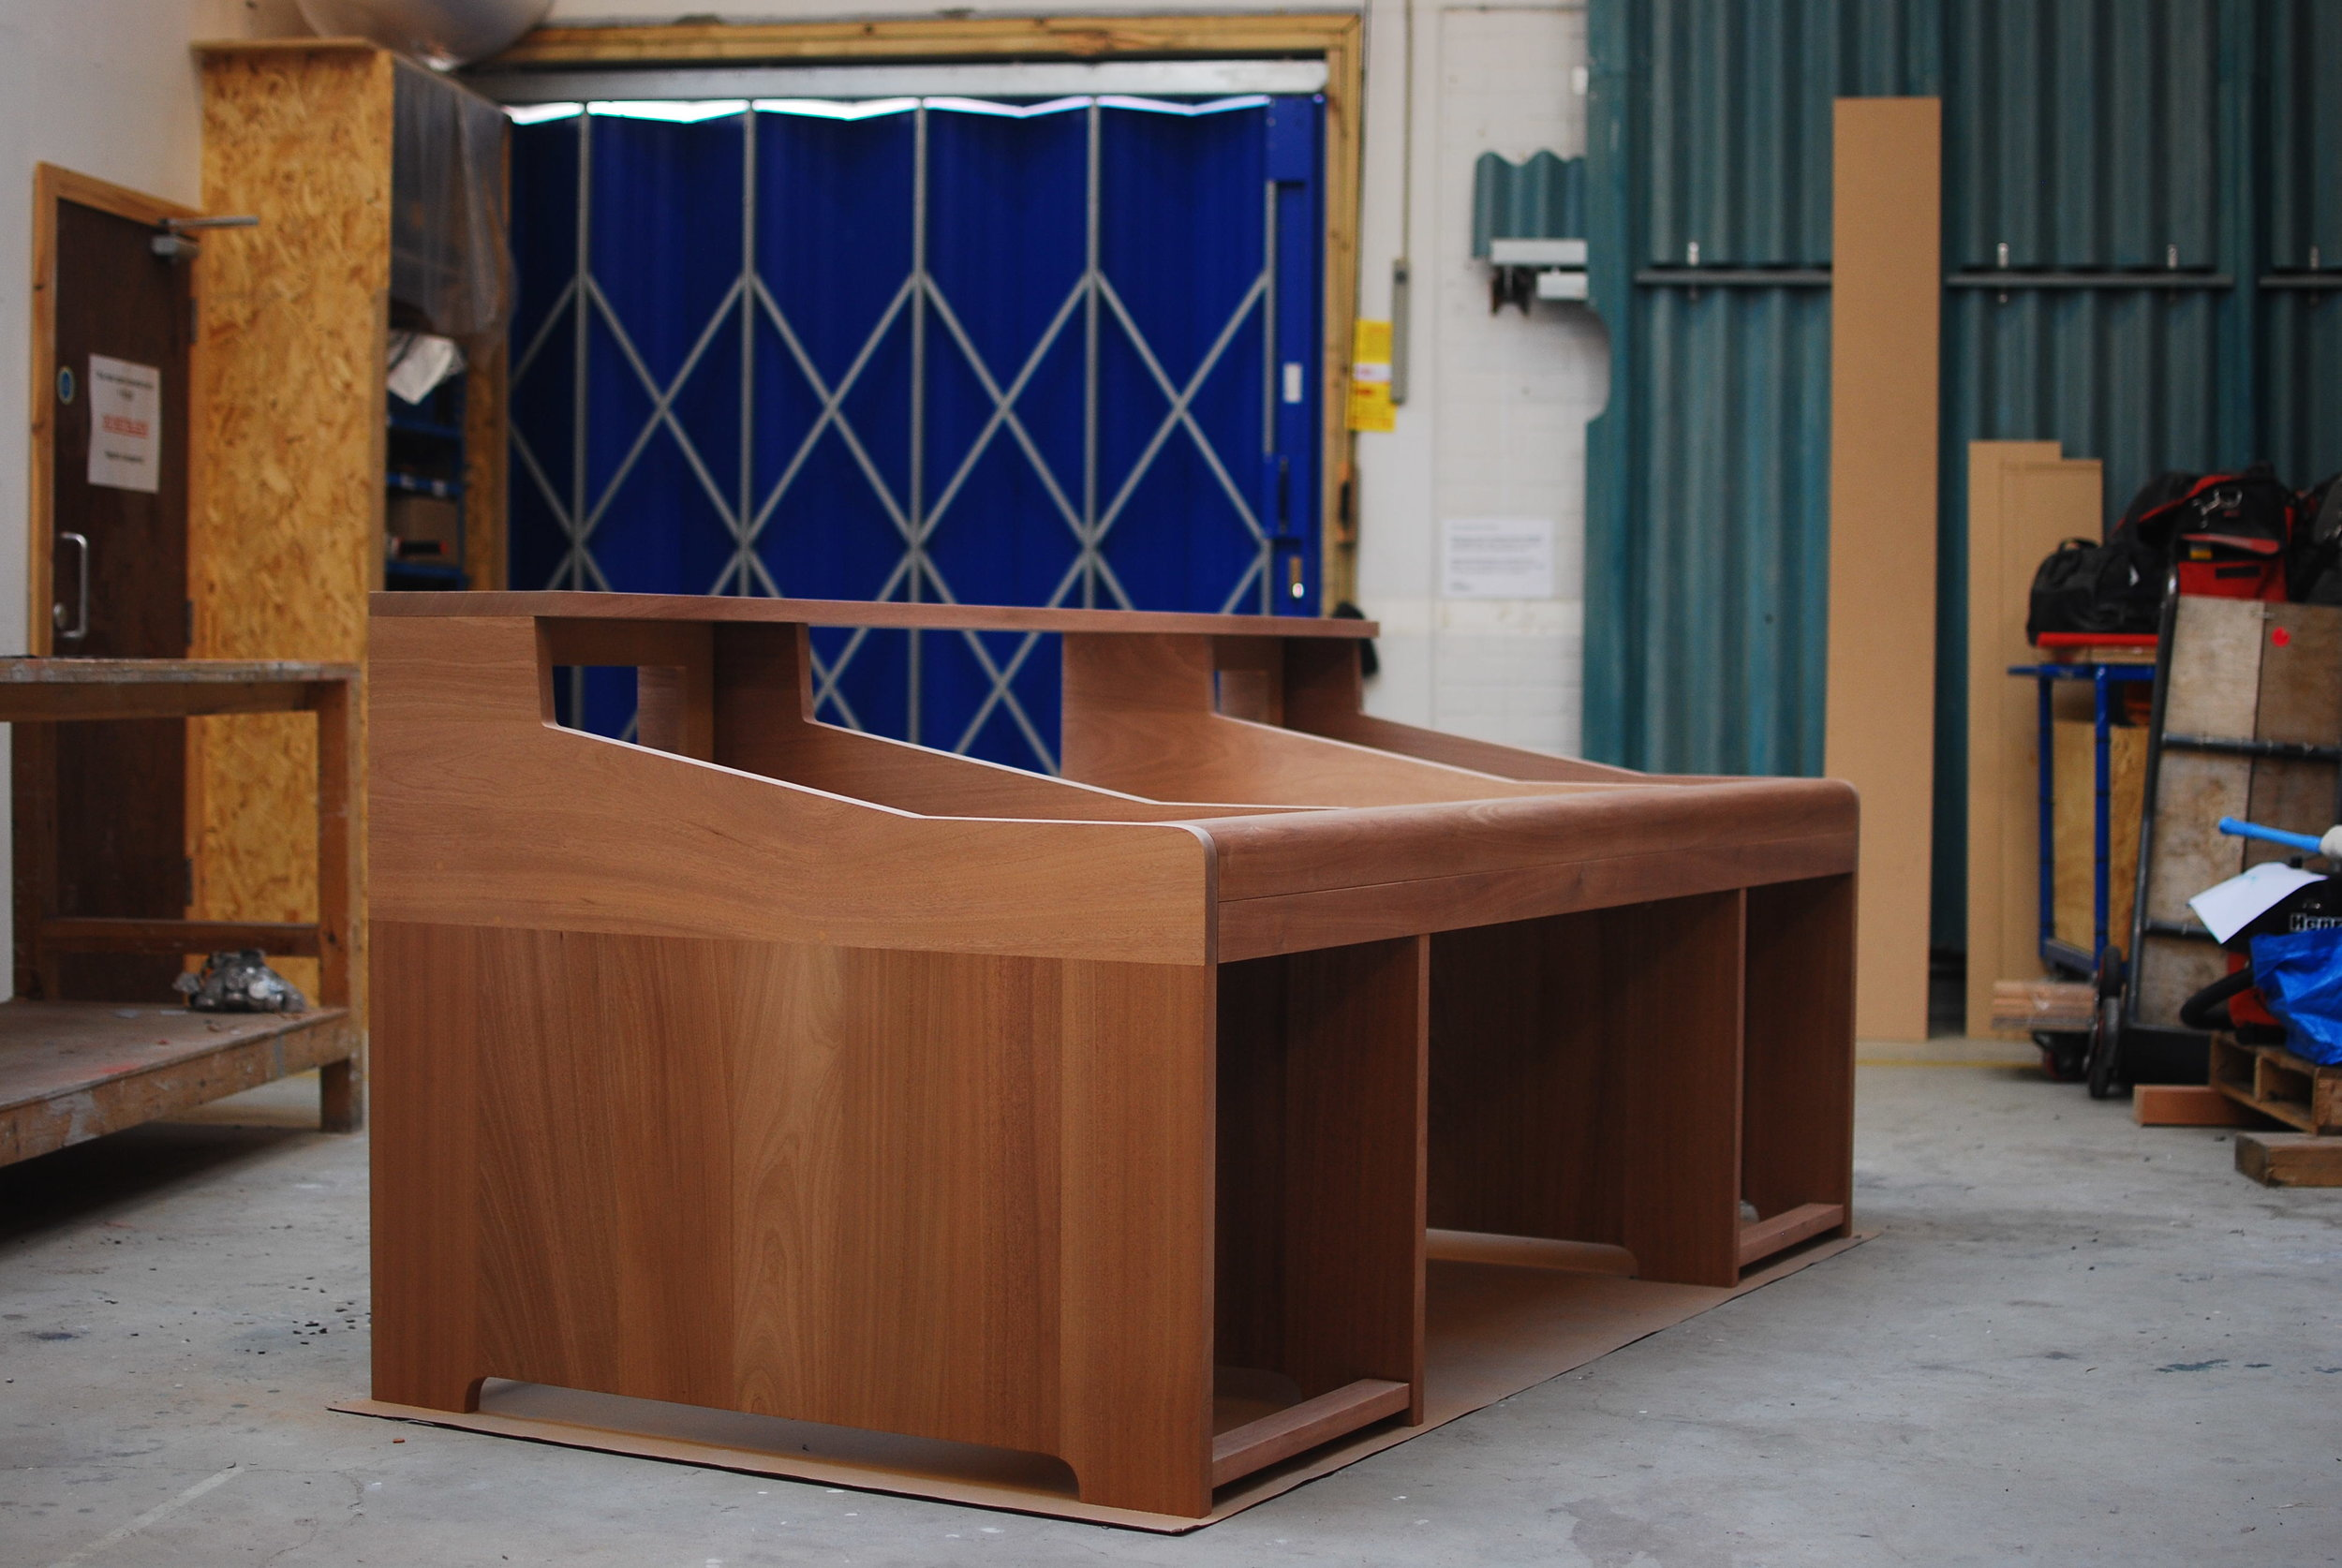 Take a look at the breath-taking pieces from our Bashmore sapele furniture London project in New Cross, 2017. Click to view our projects.